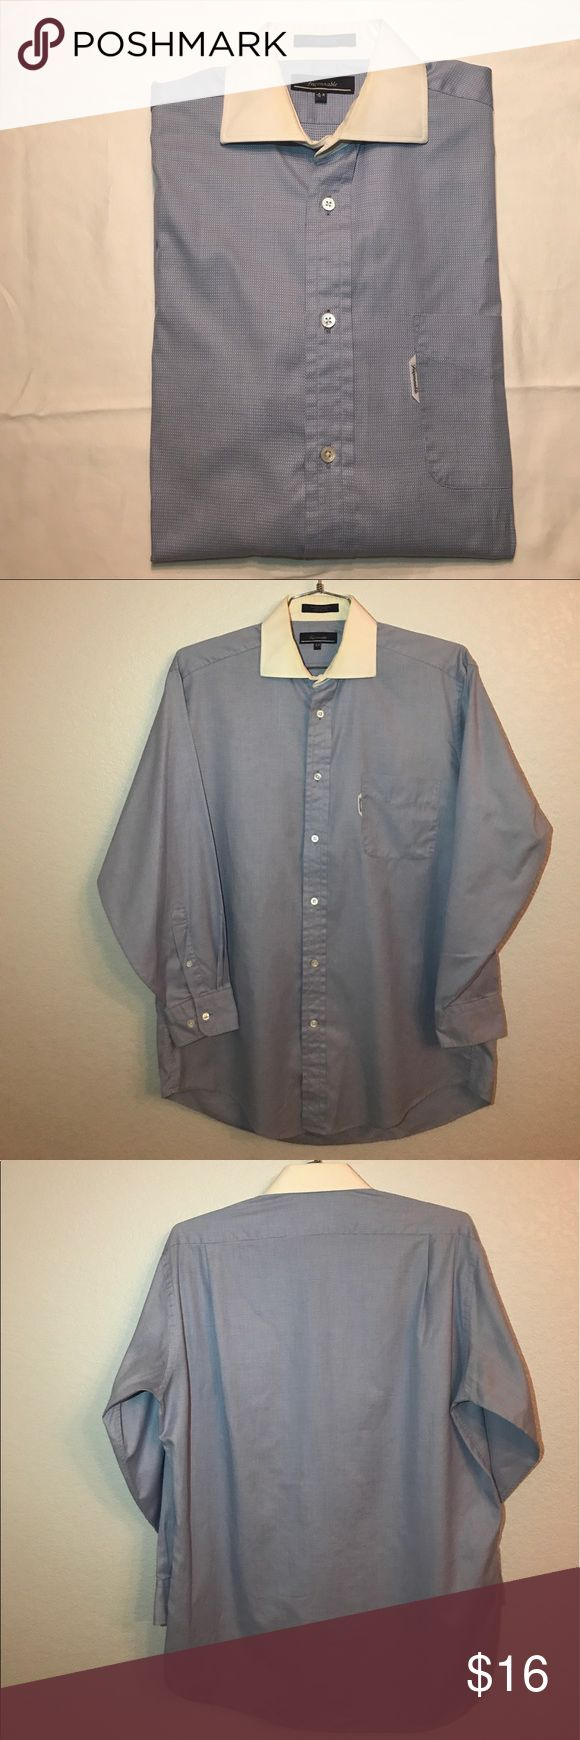 """Faconnable White Collar Blue Button Down Shirt Pre owned in good condition. Slight discoloration on Collar, but other than that, this shirt is excellent shape. Measurements: Chest= 24"""" Length= 31.25"""" Arm= 22.75"""".                                                😃Open to reasonable offers Faconnable Shirts Dress Shirts"""